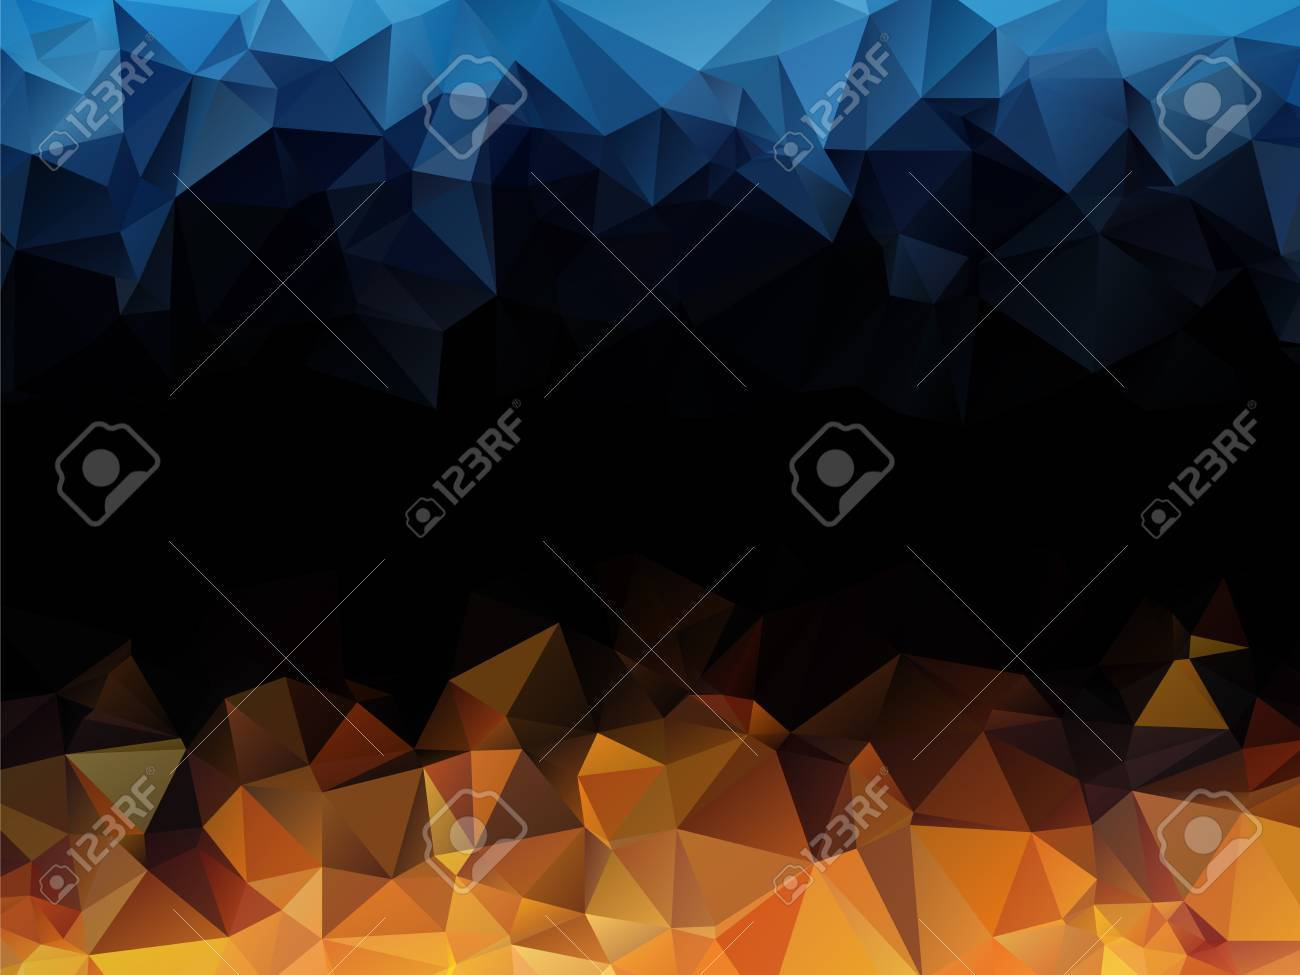 blue orange black abstract triangular background royalty free